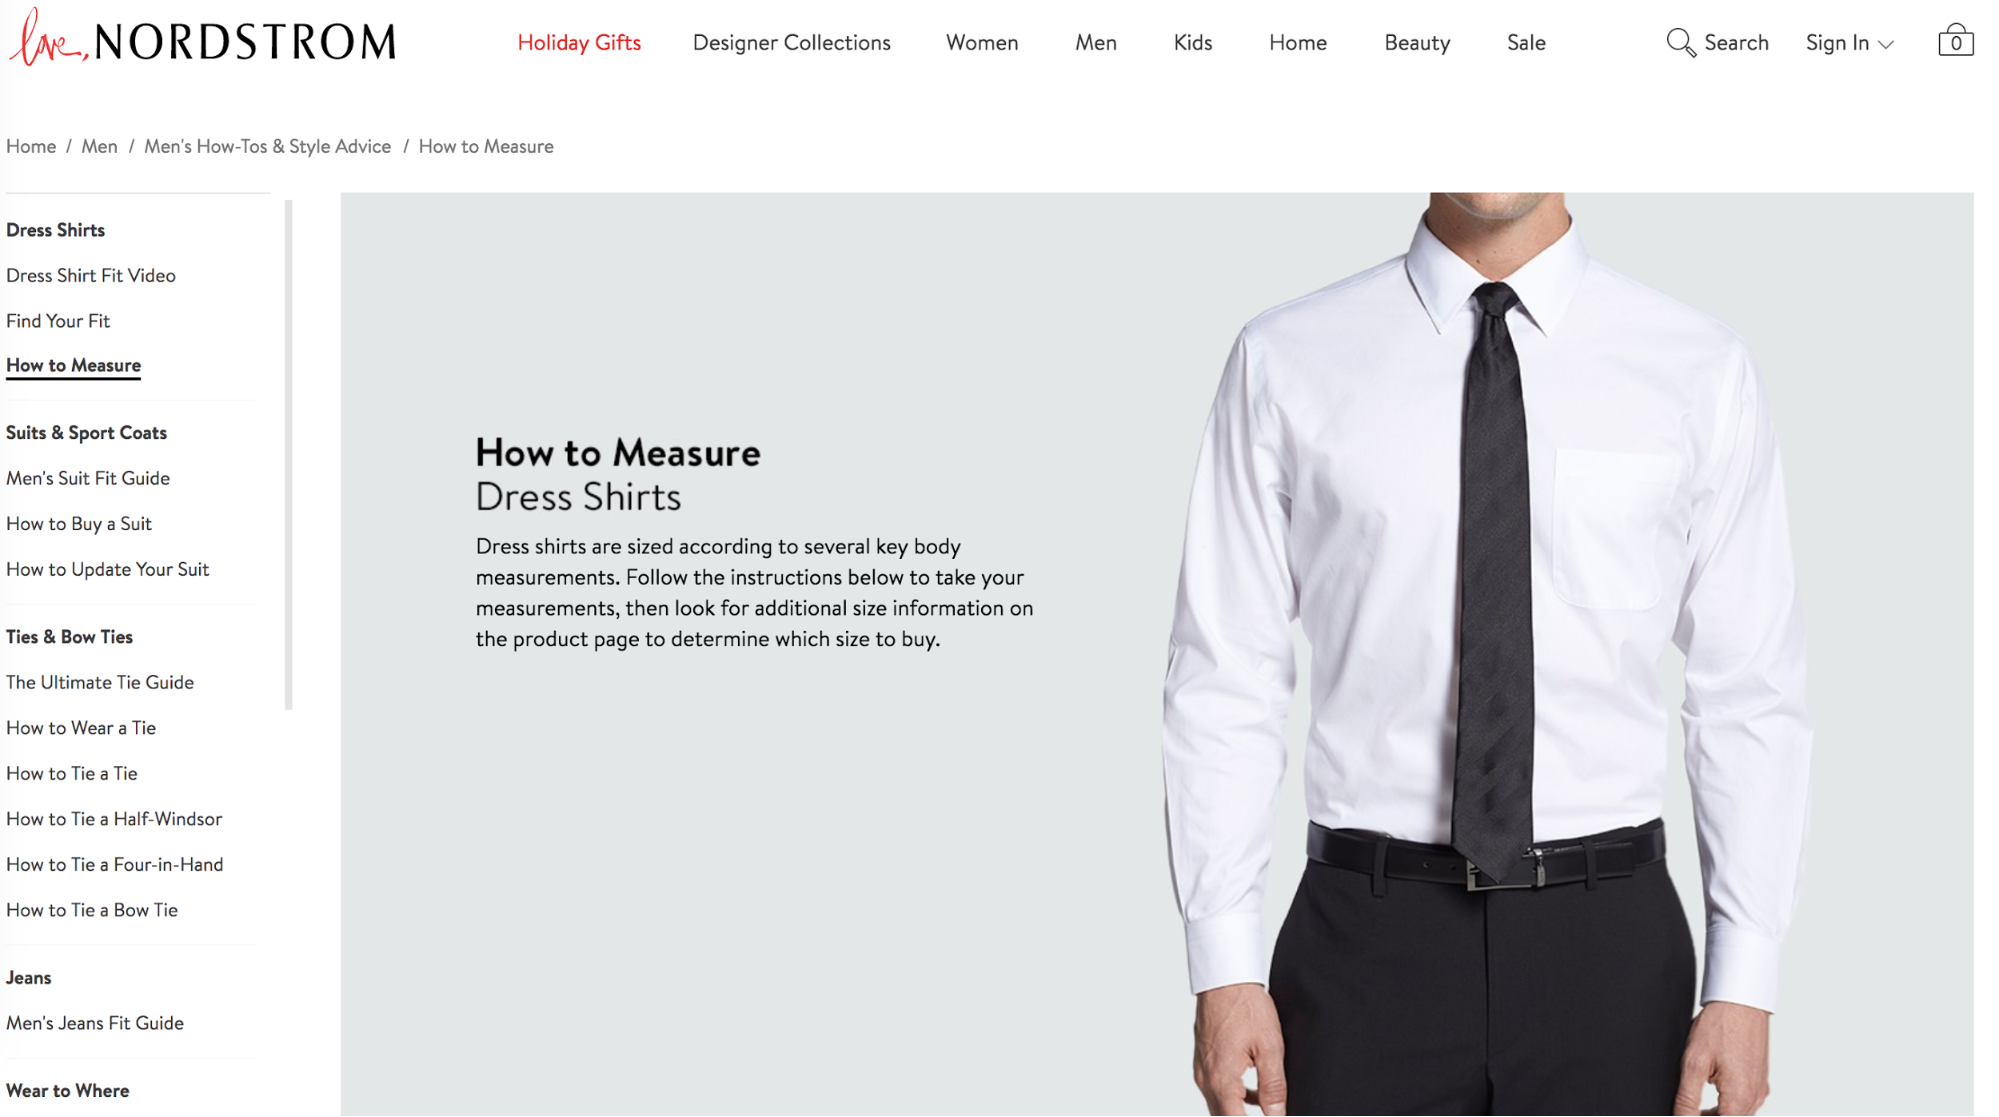 Screenshot showing a page on nordstrom.com